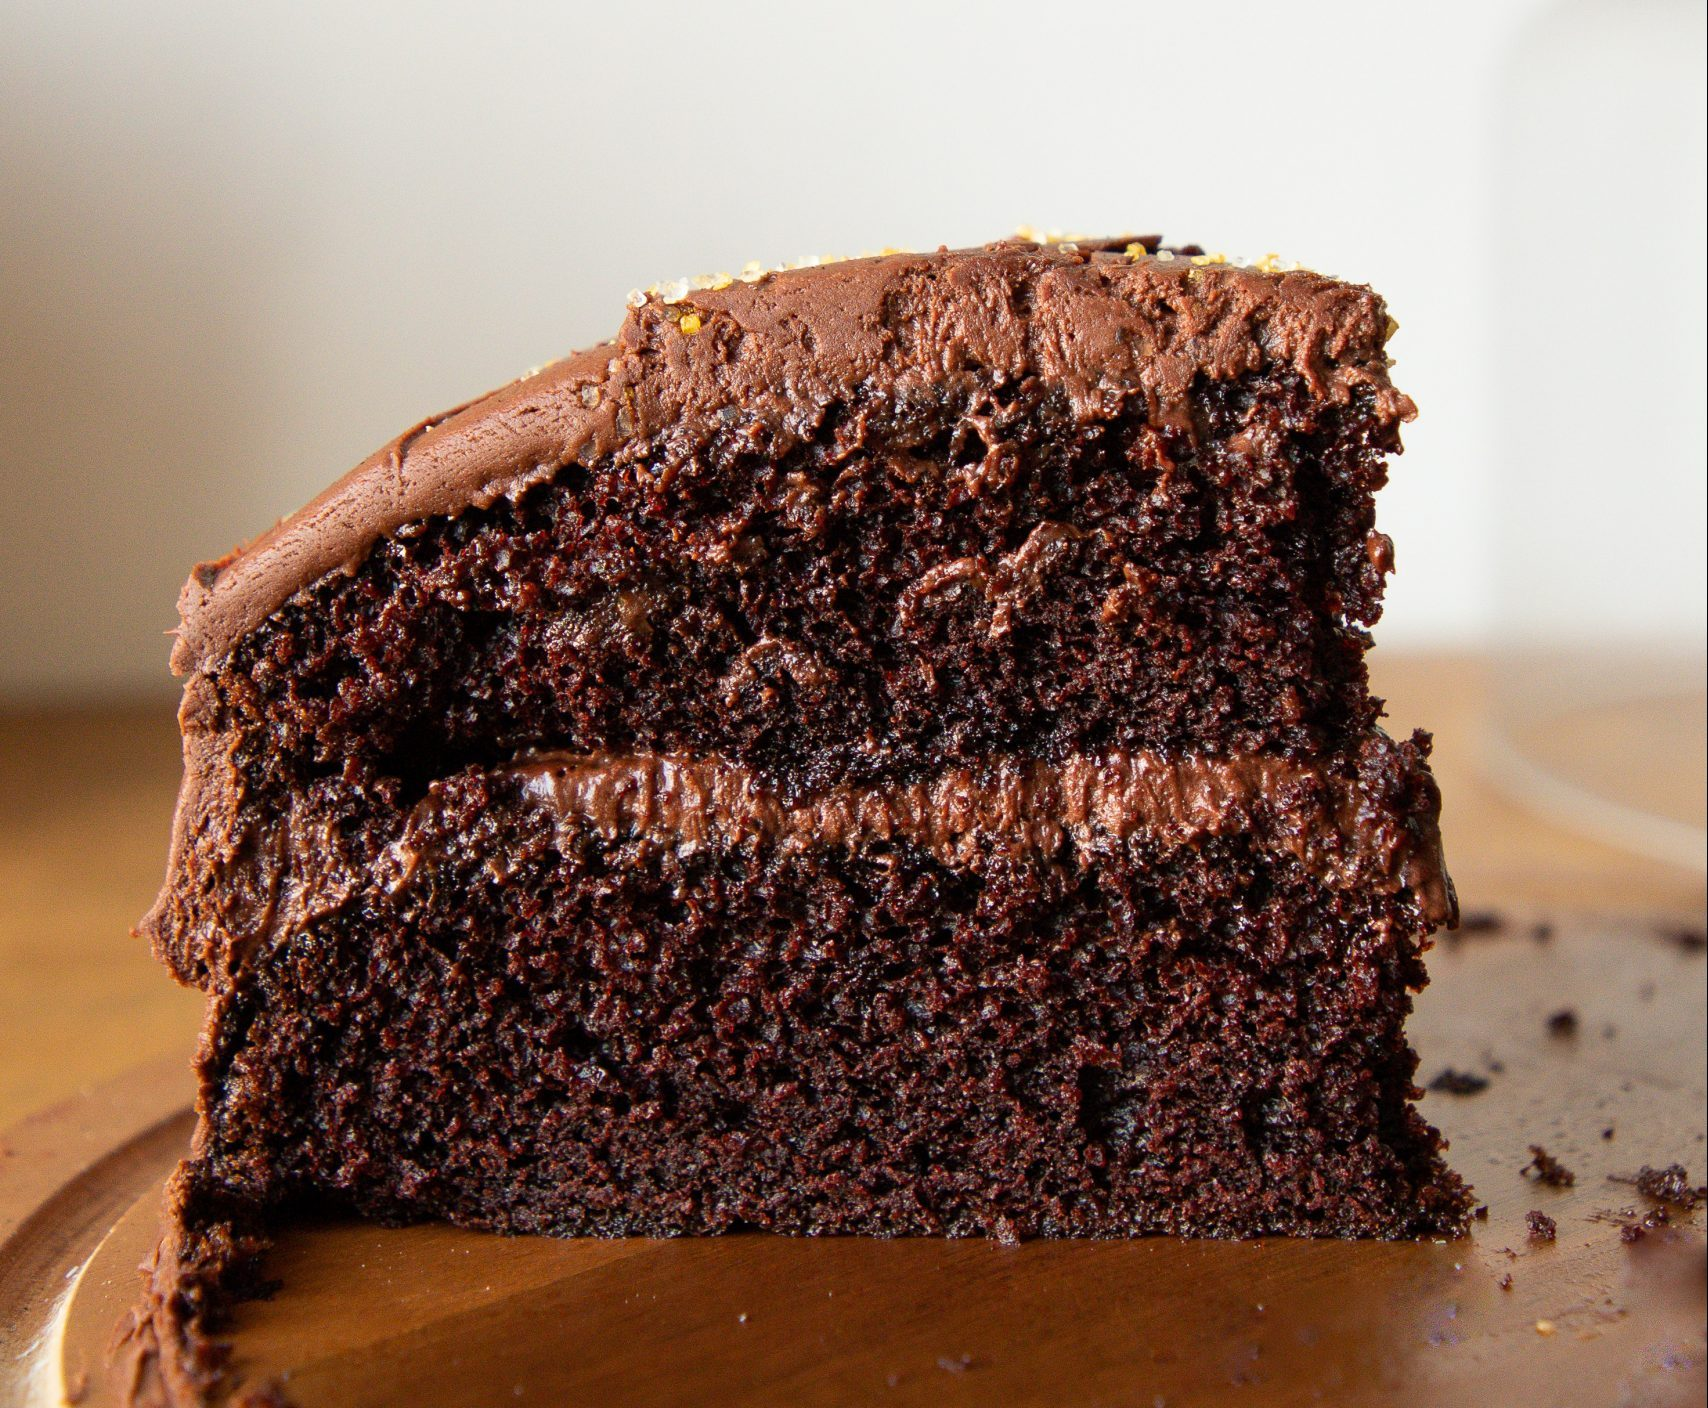 The best, most moist chocolate cake you'll ever taste!